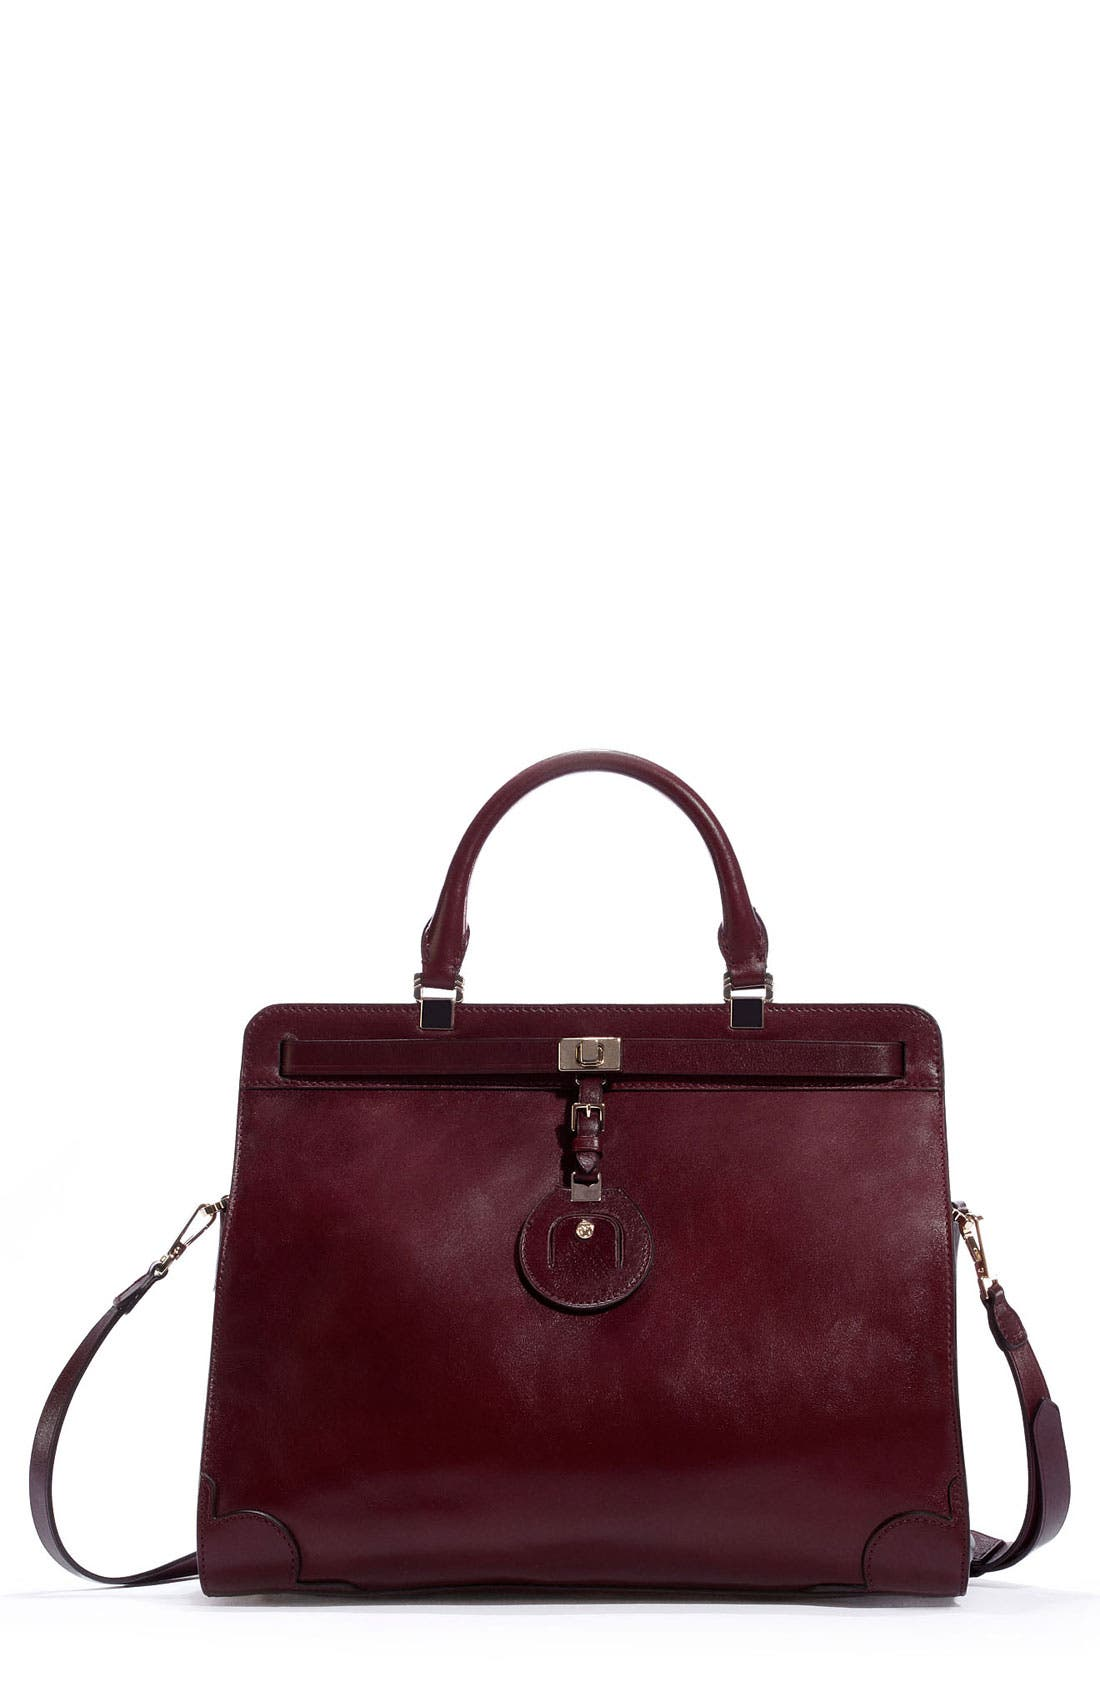 Alternate Image 1 Selected - Jason Wu 'Jourdan' Leather Satchel